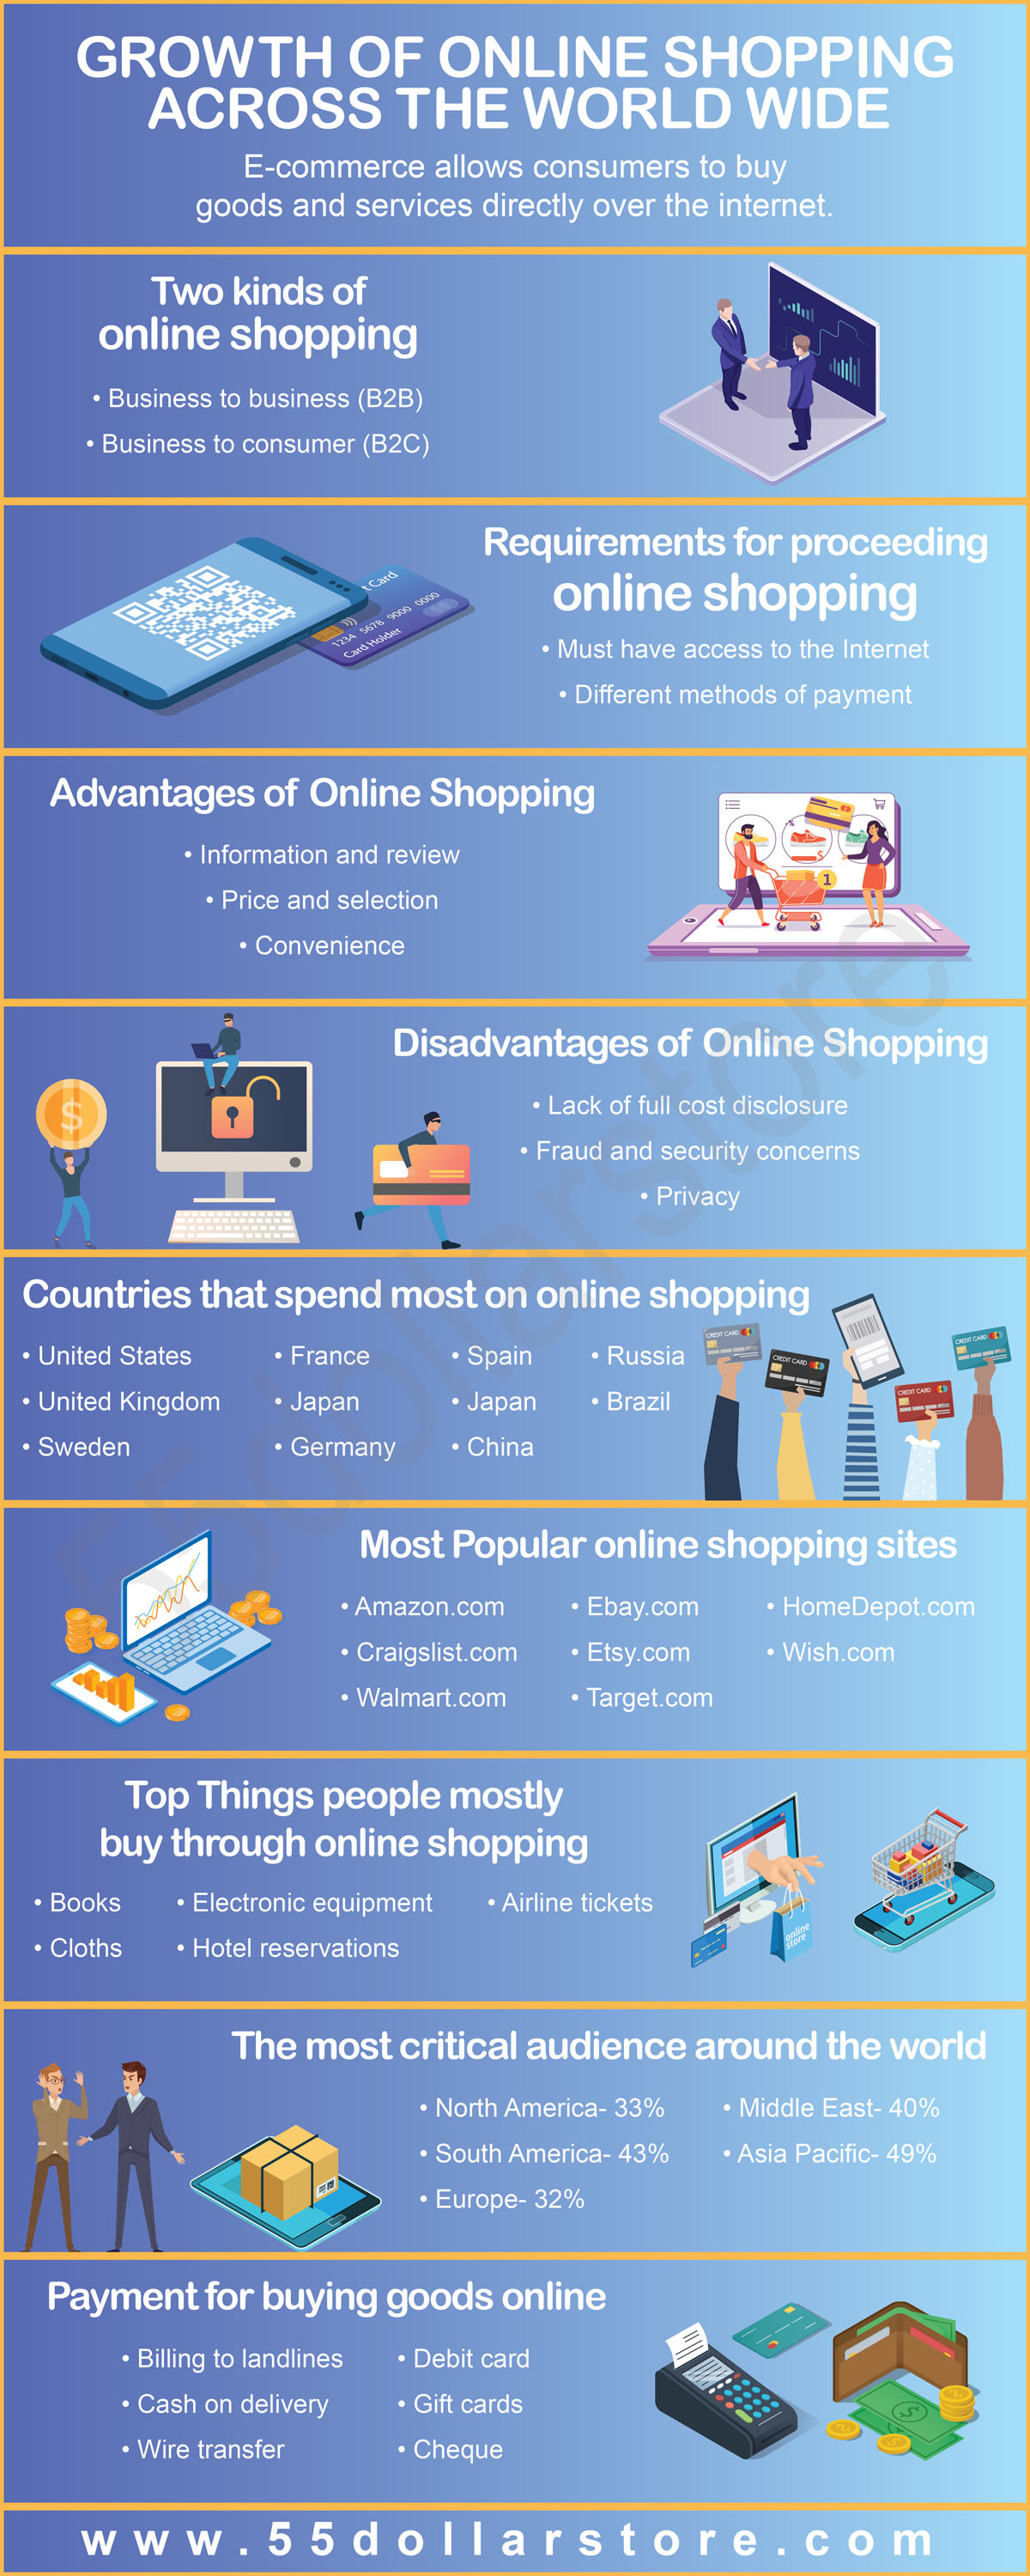 Impact of Online Shopping Across The World